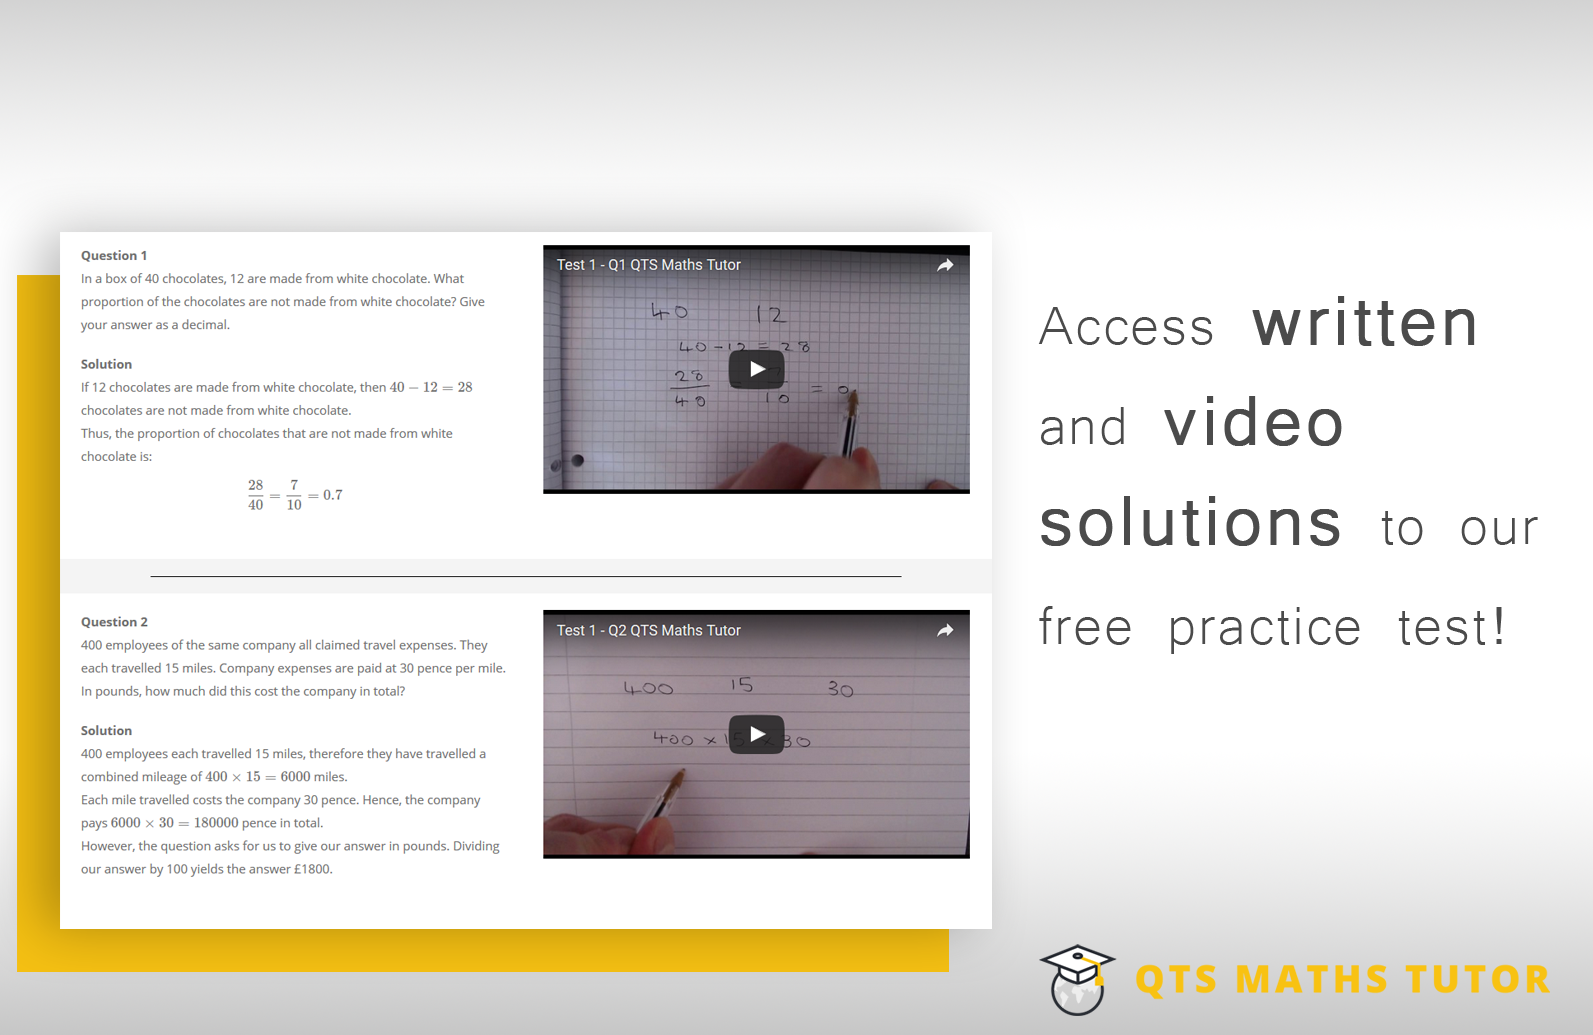 Video solutions to Numeracy skills tests